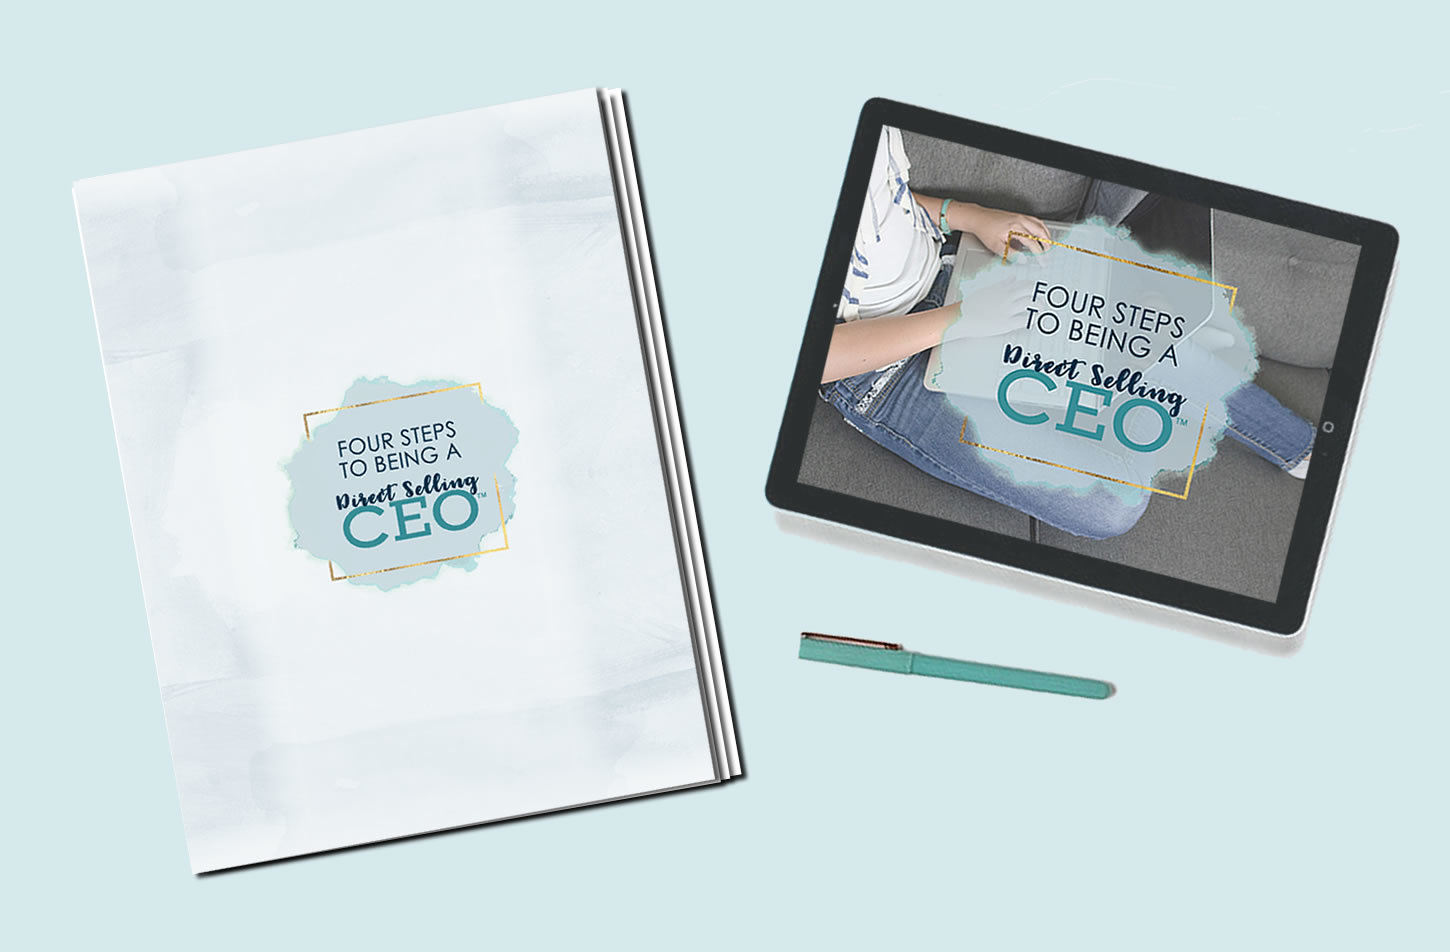 How to be a Direct Selling CEO Course and Workbook